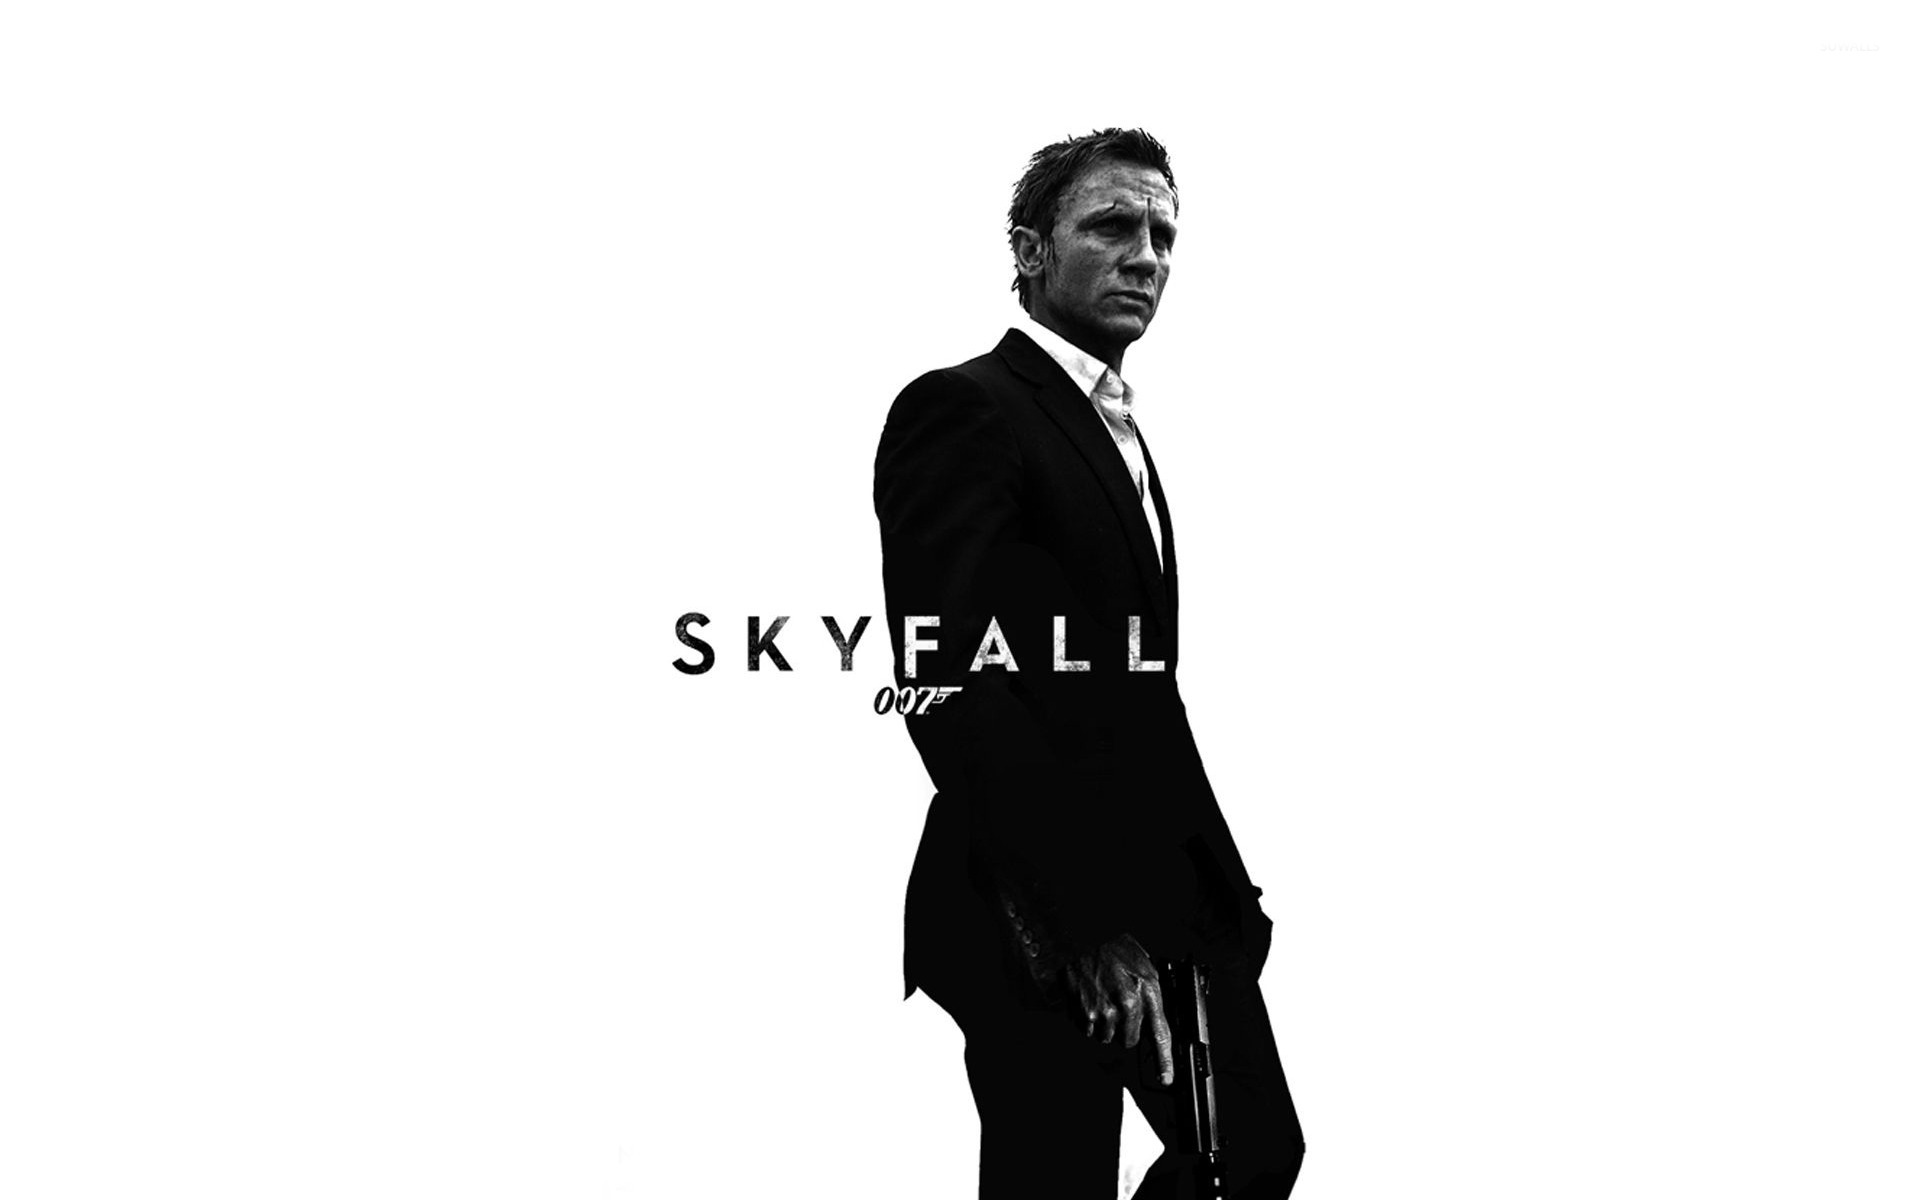 james bond - skyfall [2] wallpaper - movie wallpapers - #14231